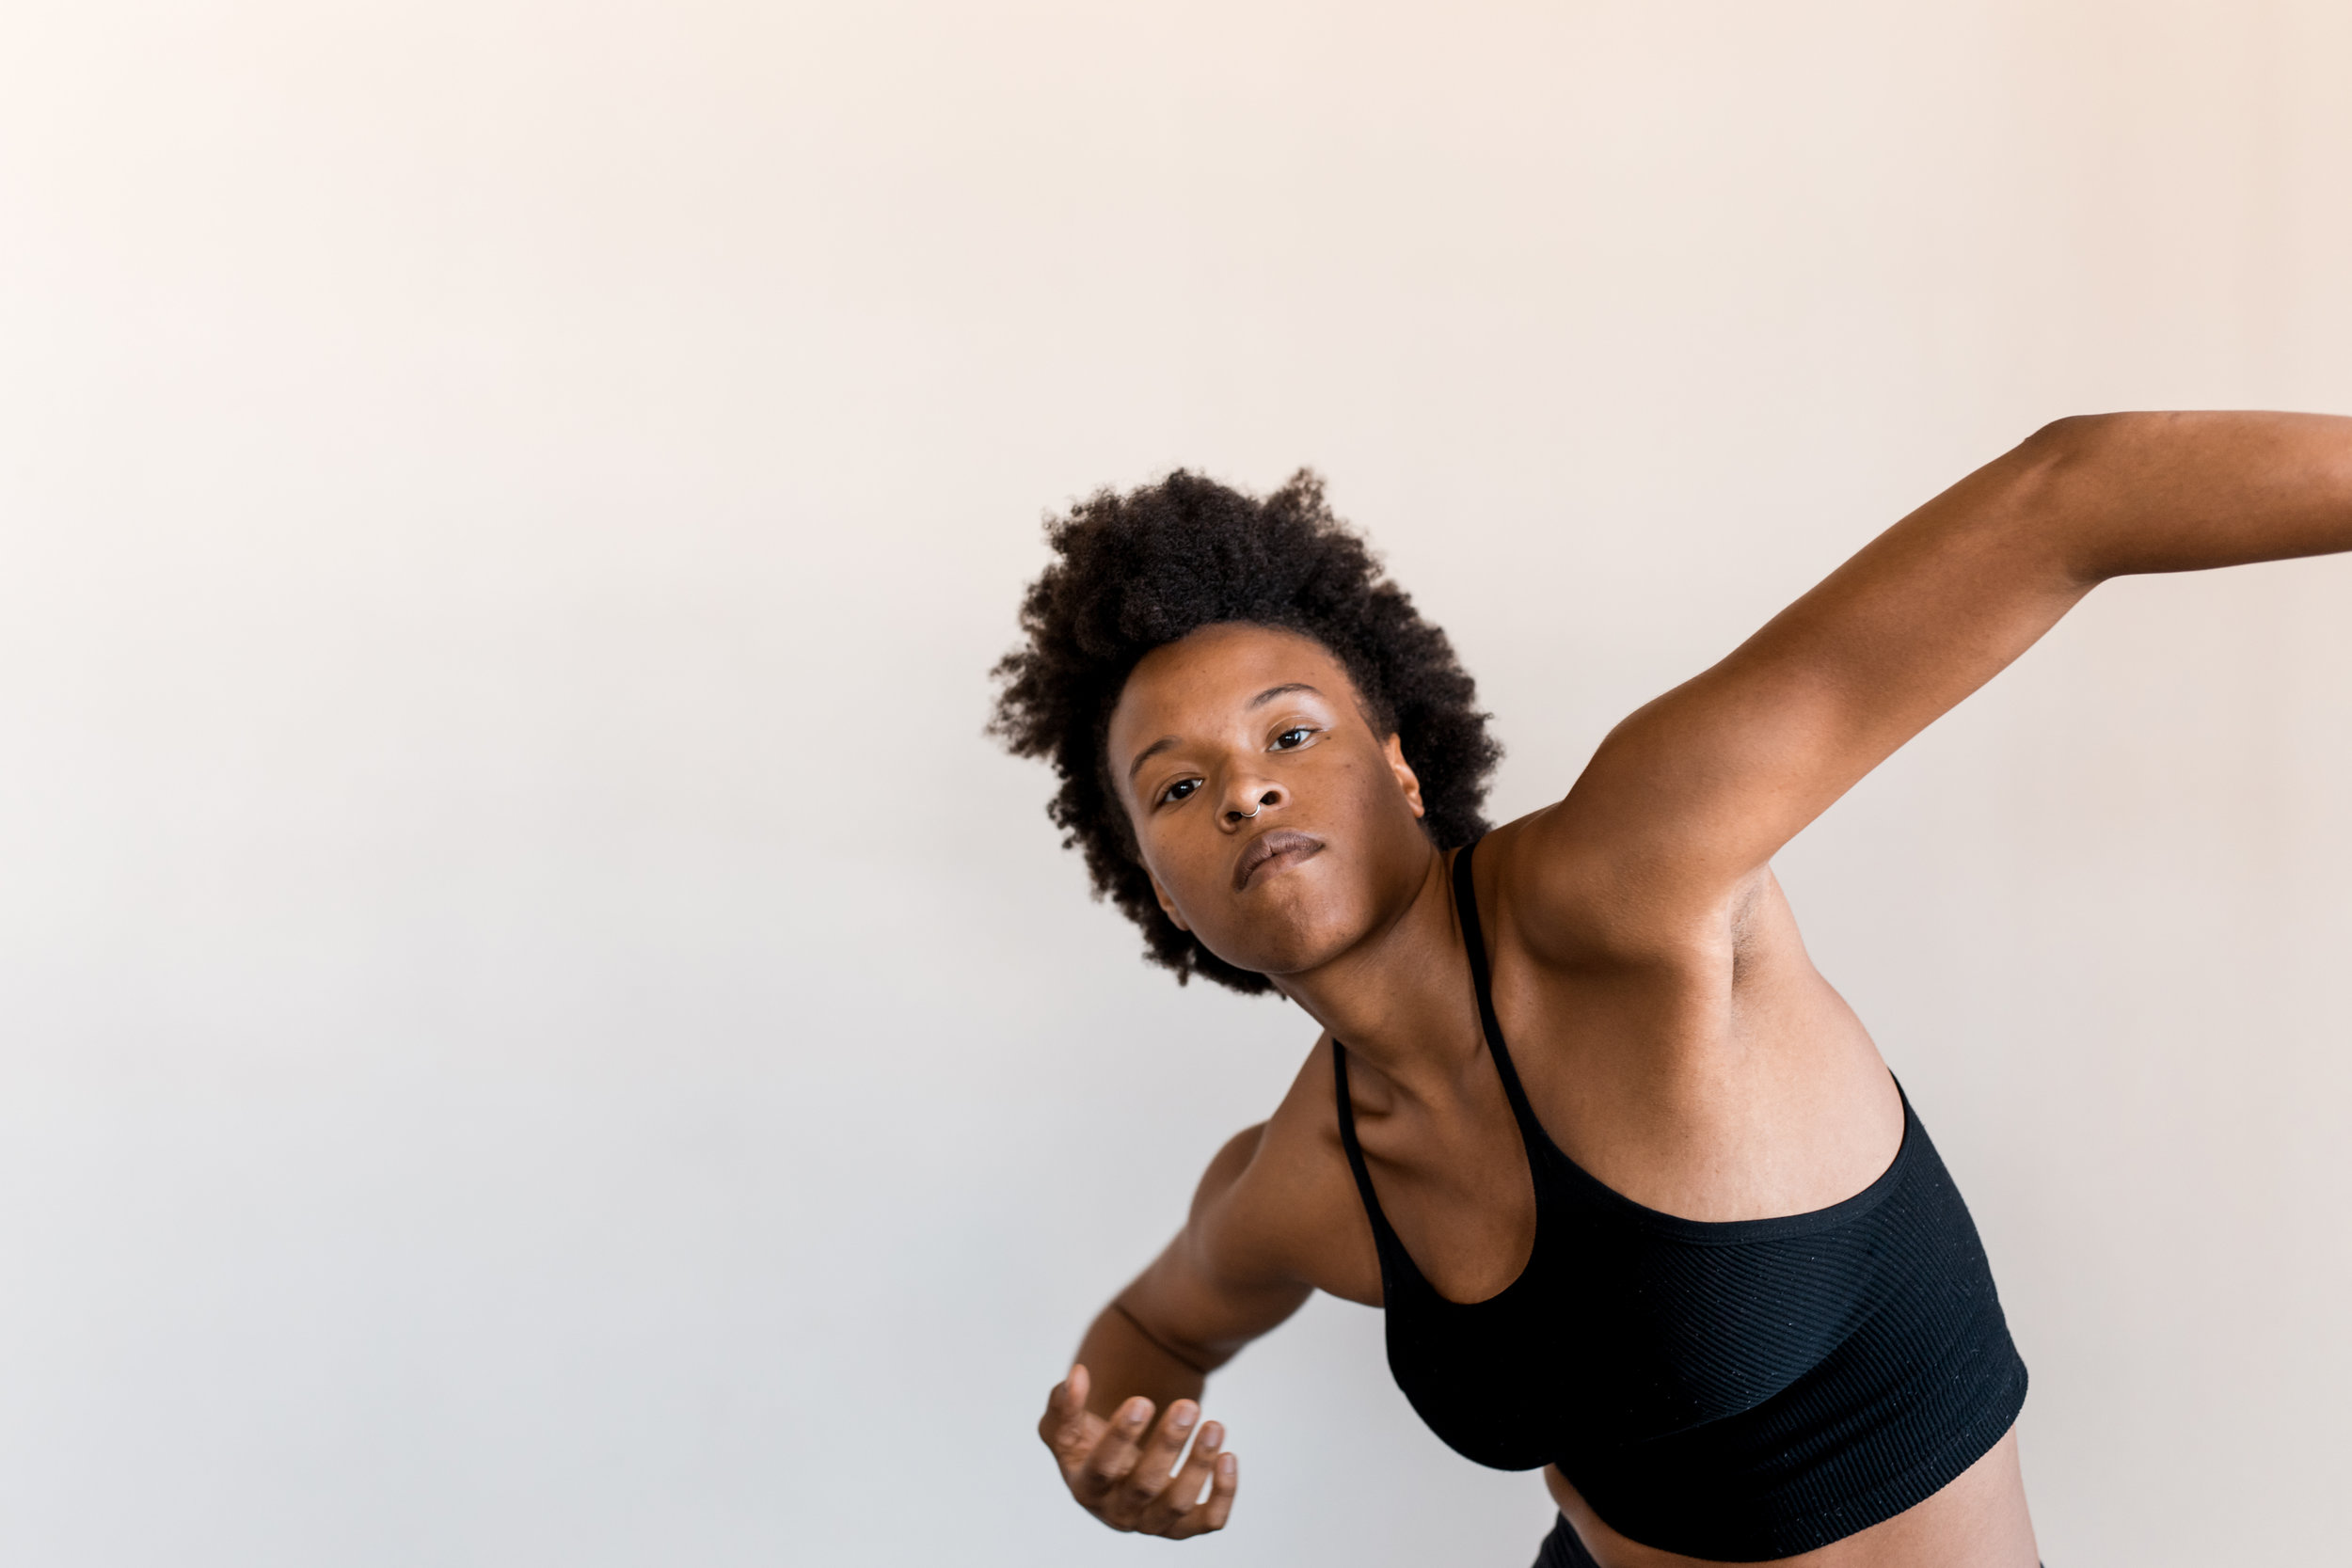 Courtney Lewis  Courtney is from Baltimore, MD. She began her dance training at the age of 5 under the direction of Gloria Lang. Courtney studied as a scholarship student at The Ailey School and has participated in LAUNCH at Northwest Dance Project. She has been fortunate enough to work with many dance makers and instructors including Ana Marie Forsythe, Kevin Wynn, Milton Myers, Adrienne Hurd, Mook Dance Company, Alessandra Giambelli + Dancers, Omar Roman de Jesus + Dancers, and staibdance. In addition to dancing, Courtney is a certified Pilates instructor and an integrative wellness coach. This is Courtney's second season with Kit